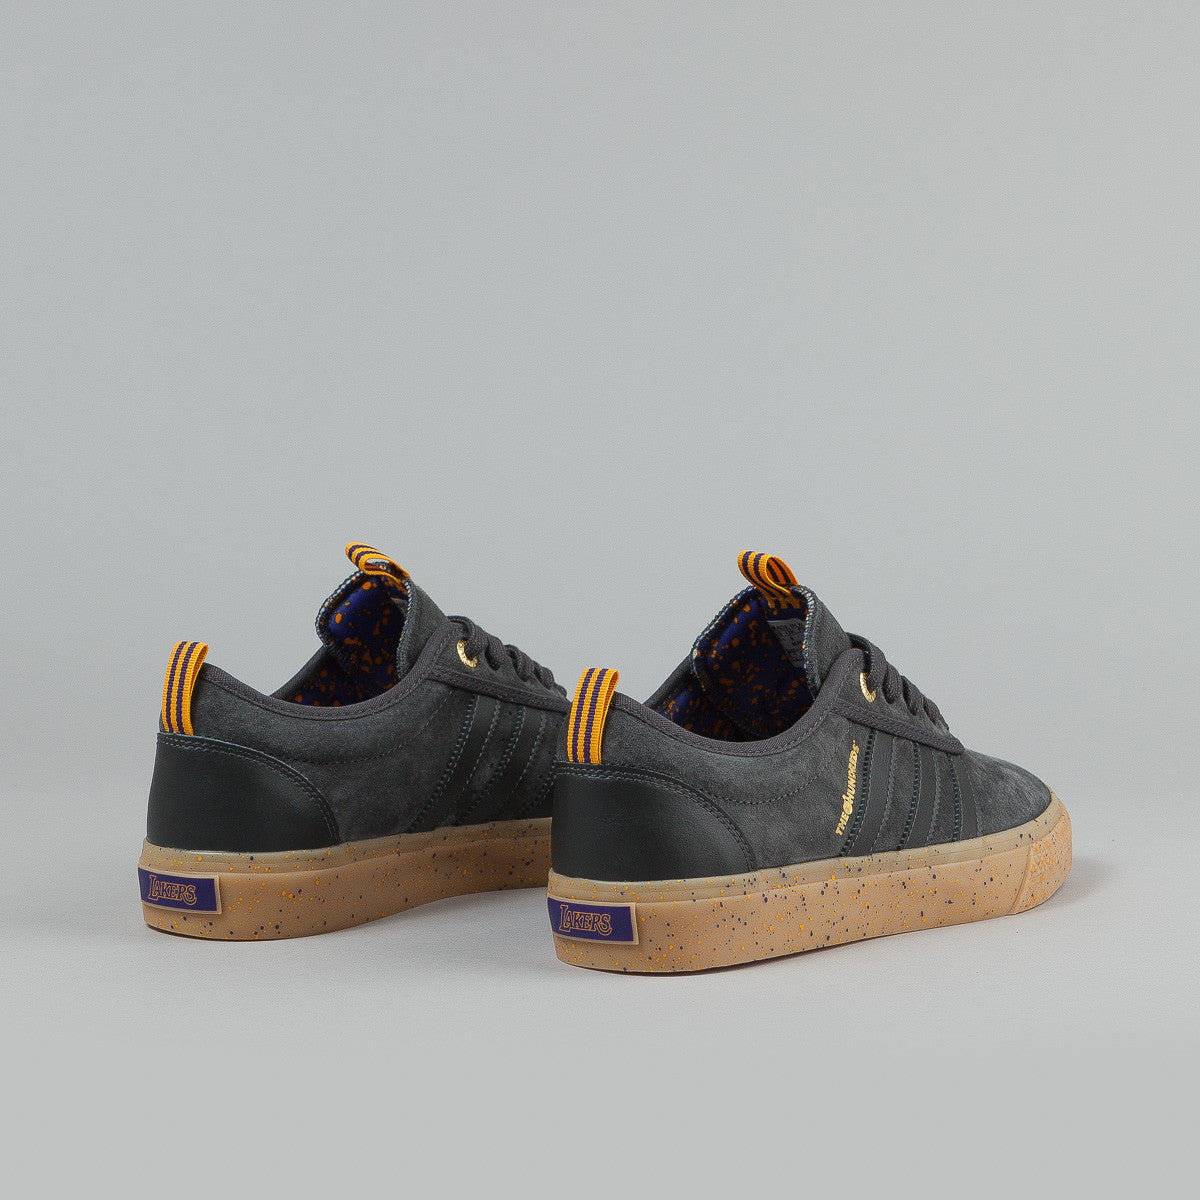 Adidas x NBA x The Hundreds Adi-Ease ADV - Grey / Purple